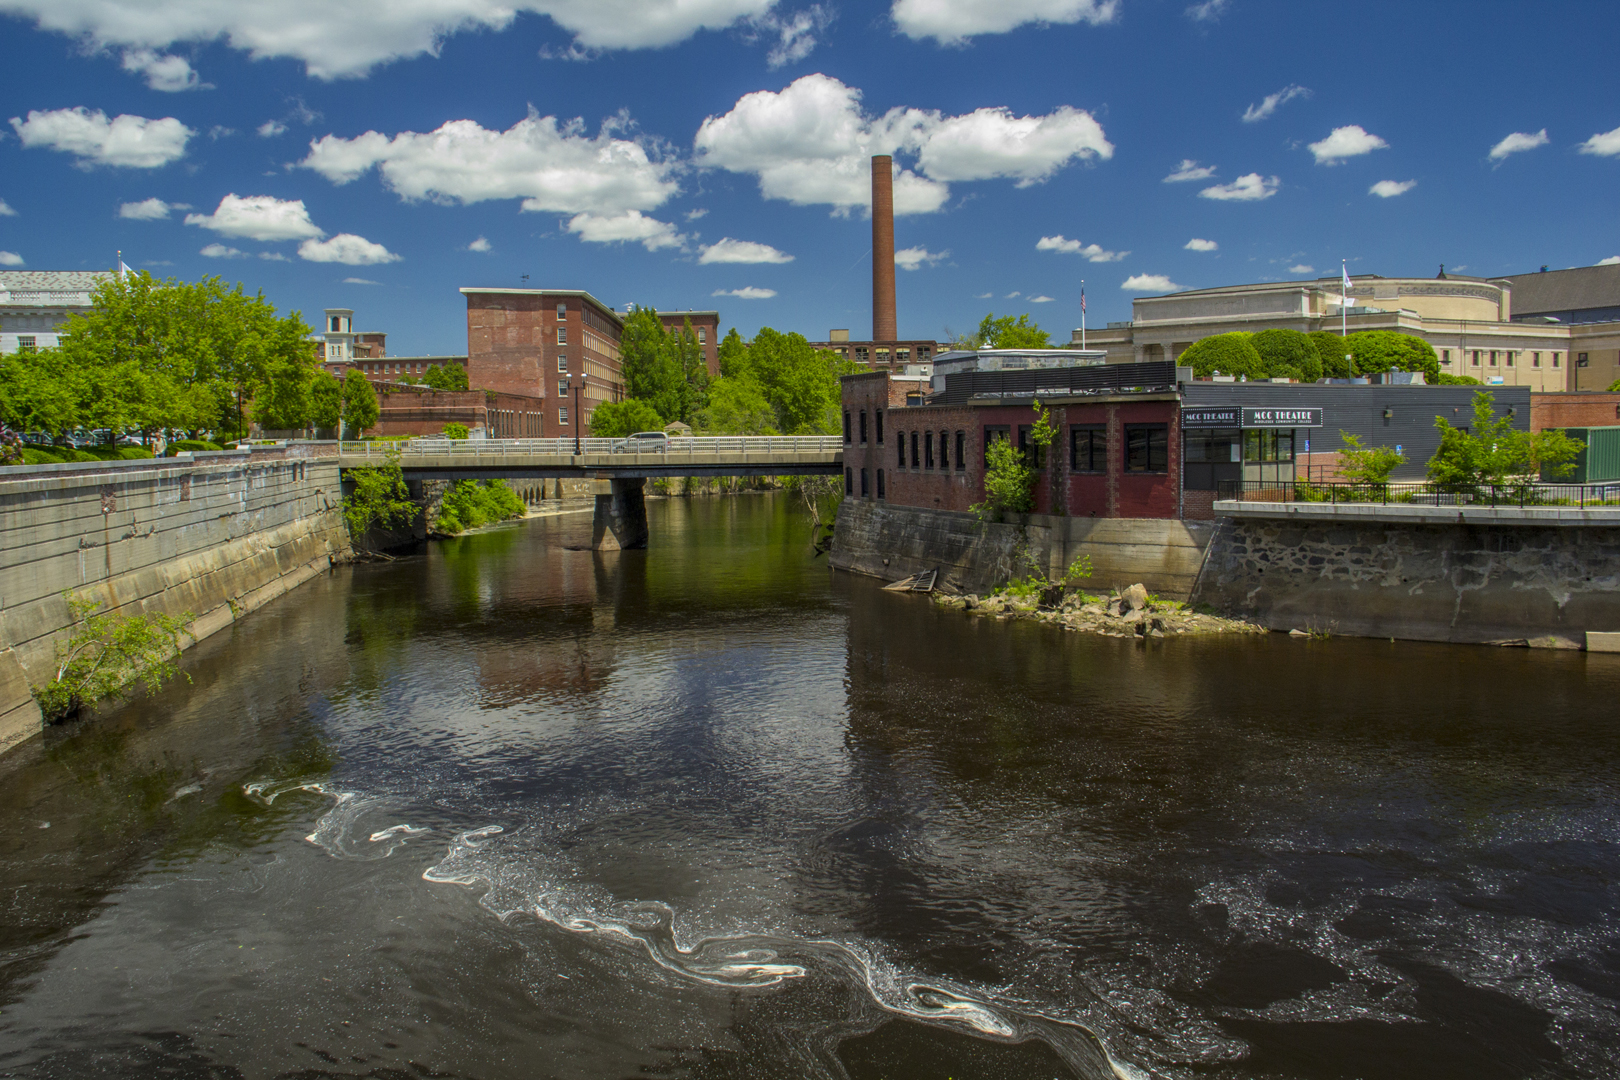 LowellMillCity_031